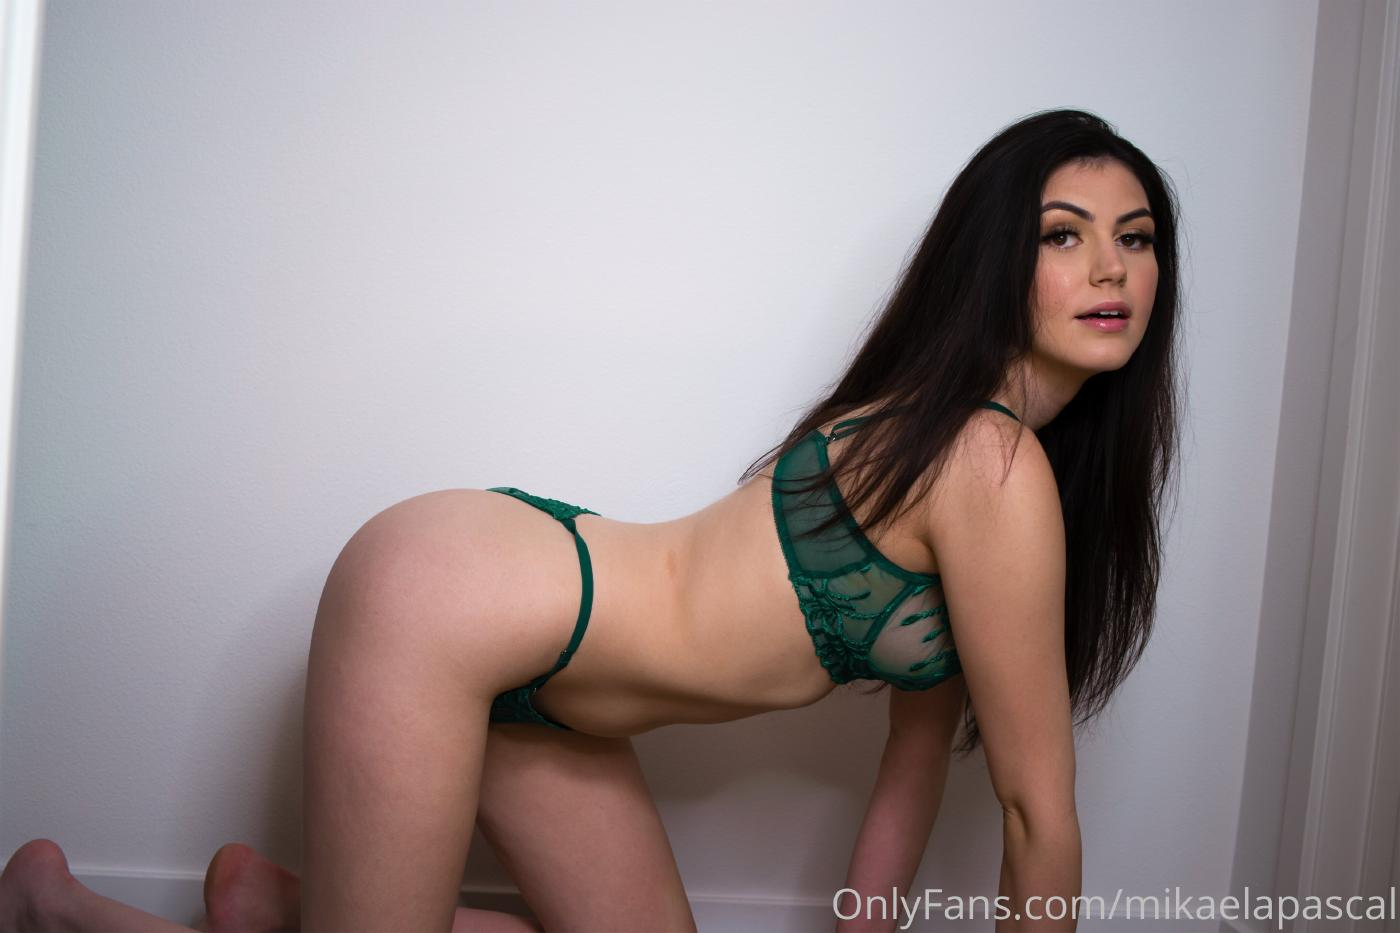 Mikaela Pascal Onlyfans March Extras Leaked 0003